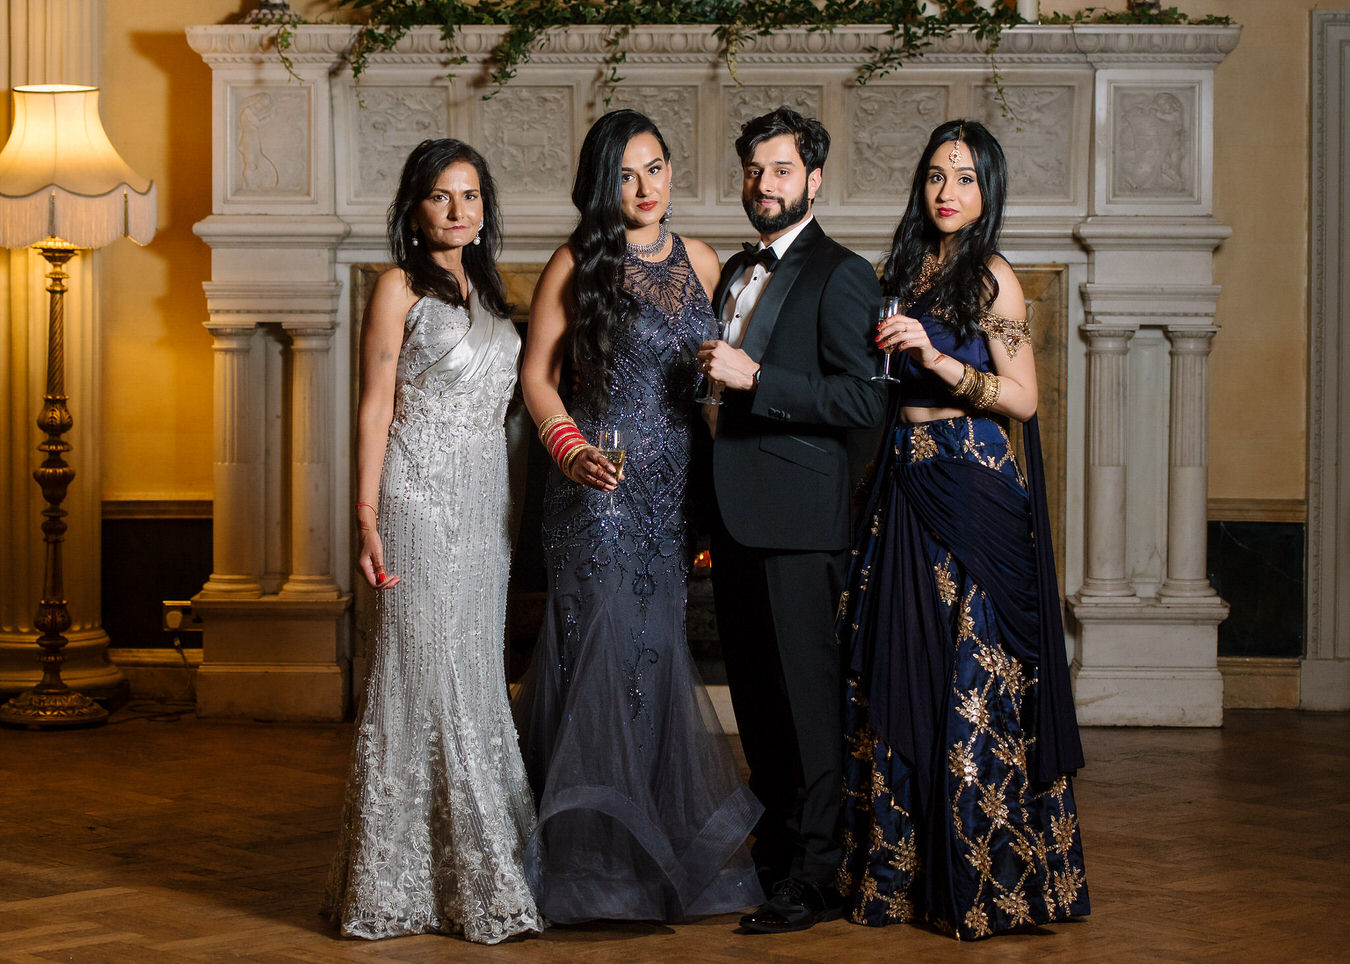 Sikh Asian wedding family photography portrait with mother of the bride dressed in sparkling grey evening dress and sister's bride on the right